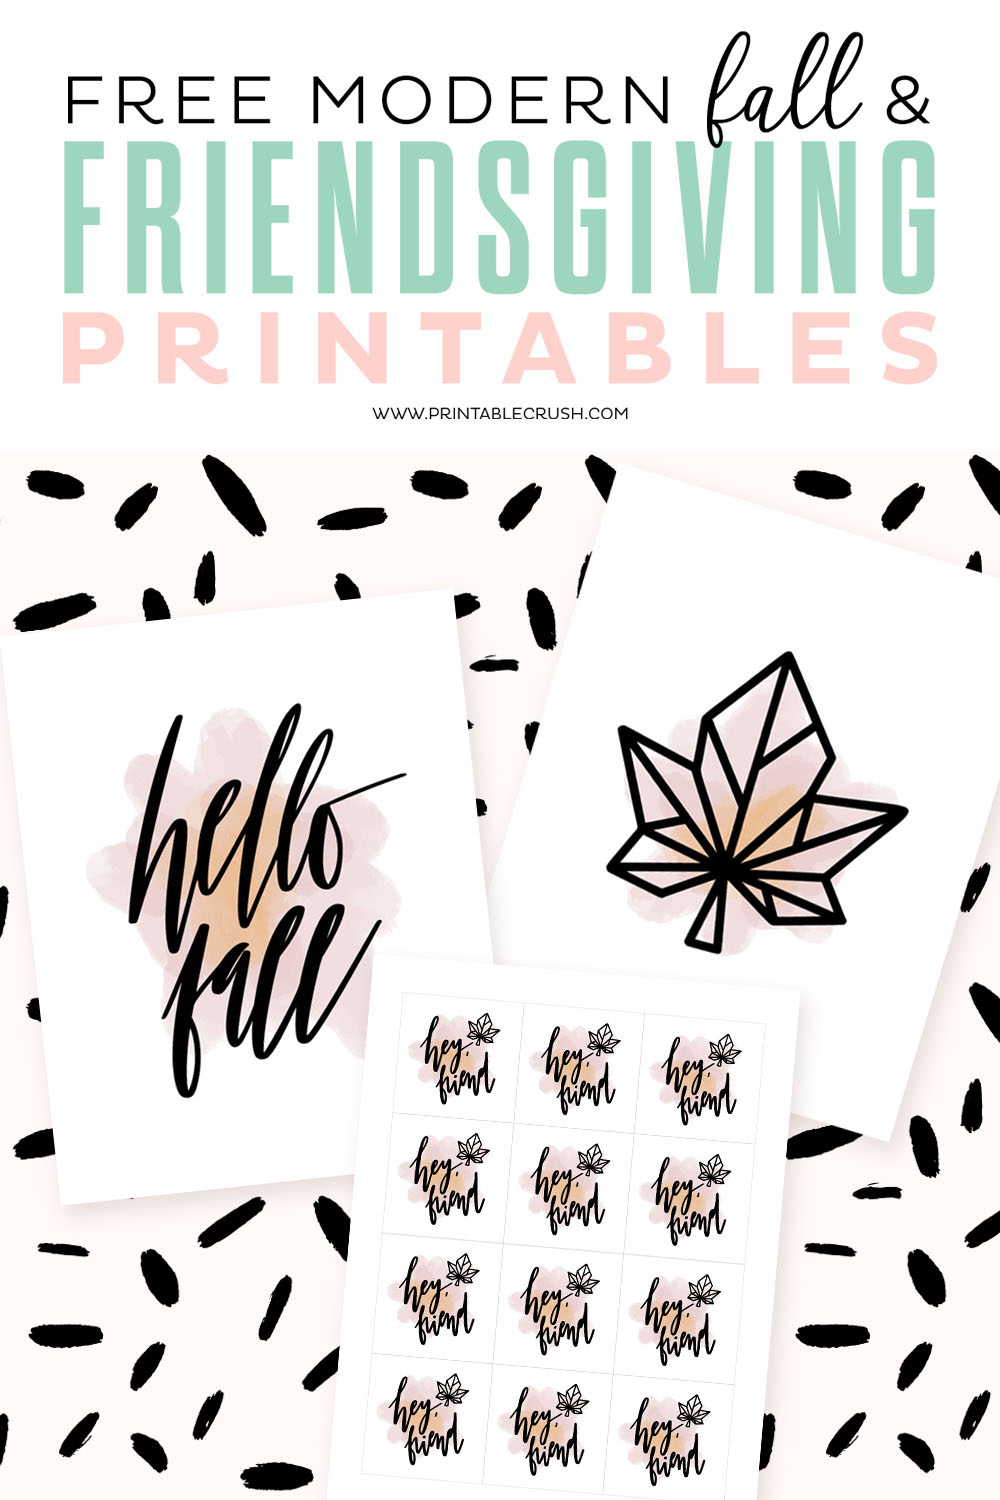 Free Modern Fall and Friendsgiving Printables - perfect for your Thanksgiving party this year!